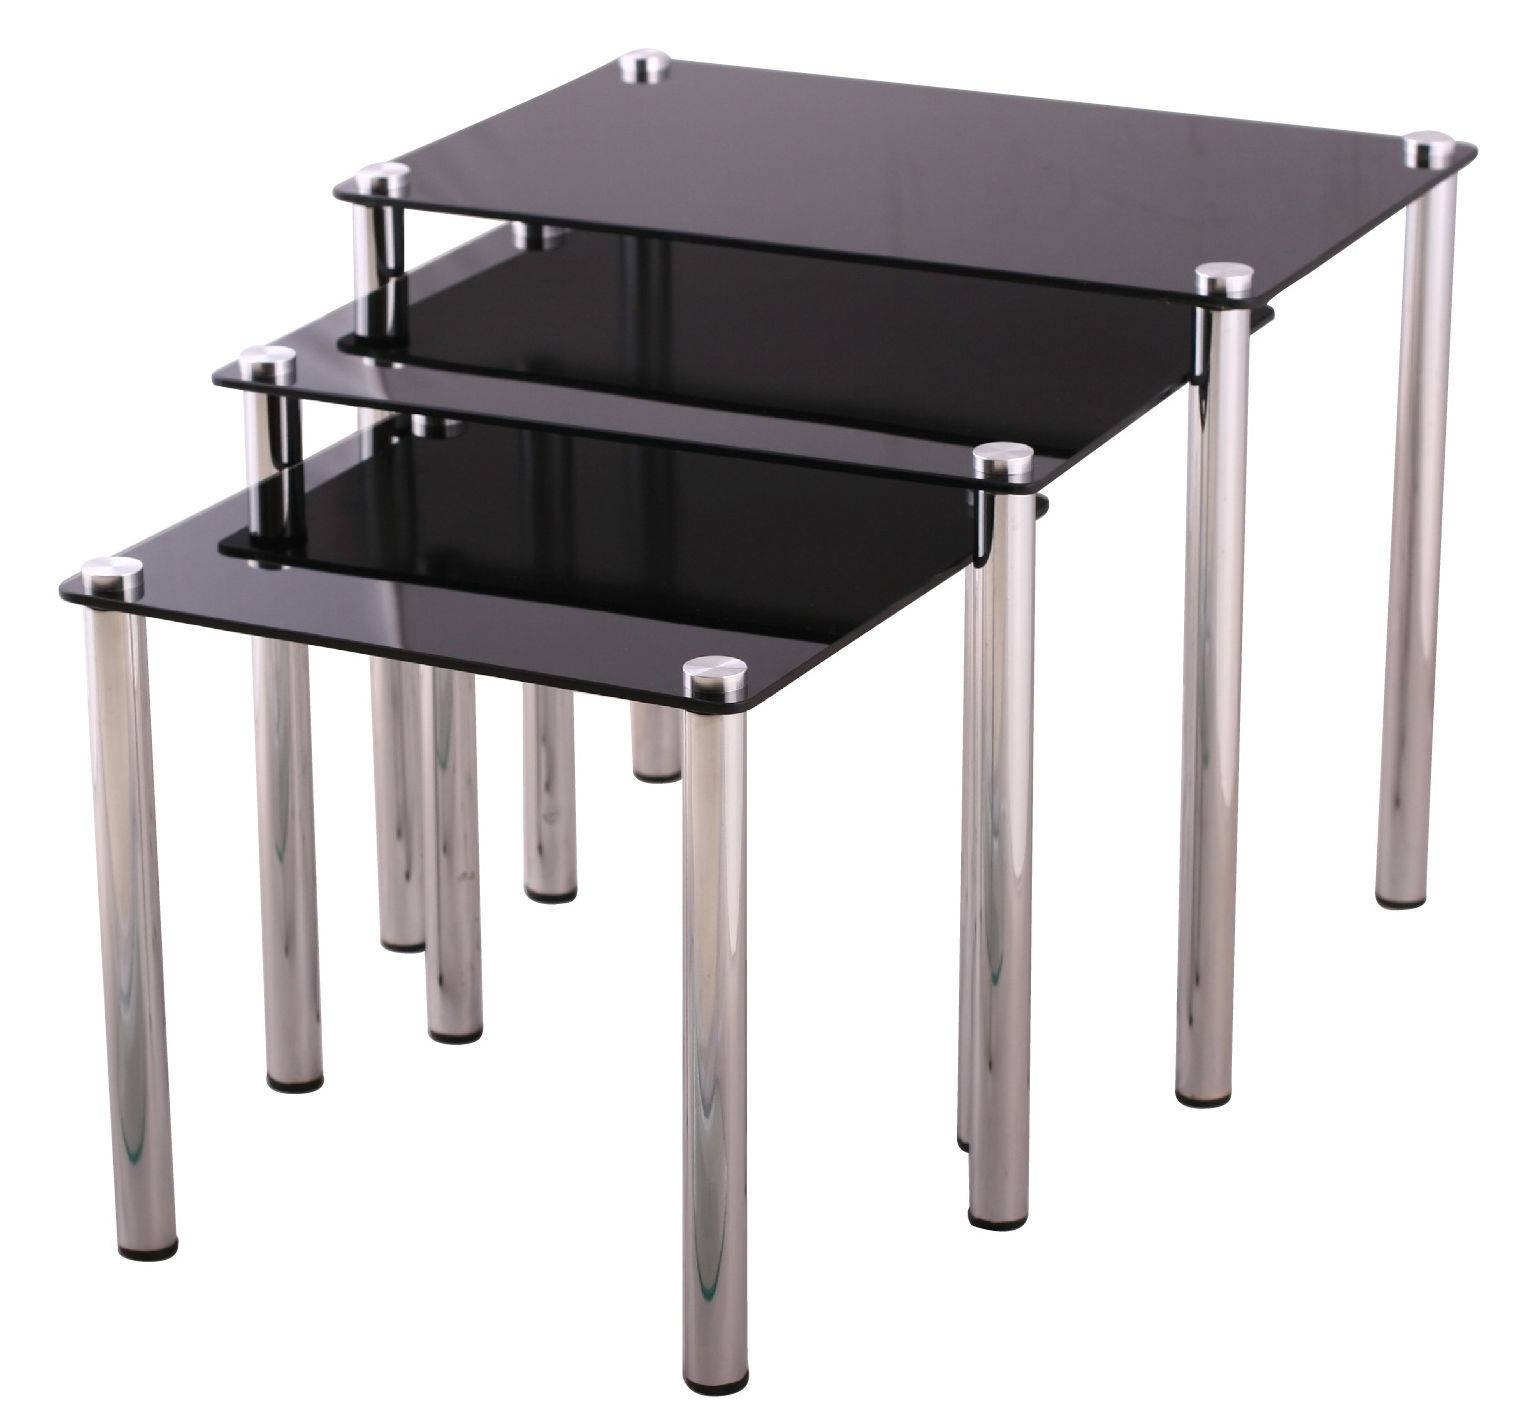 Glass Side Tables | Ebay in Elephant Coffee Tables With Glass Top (Image 25 of 30)